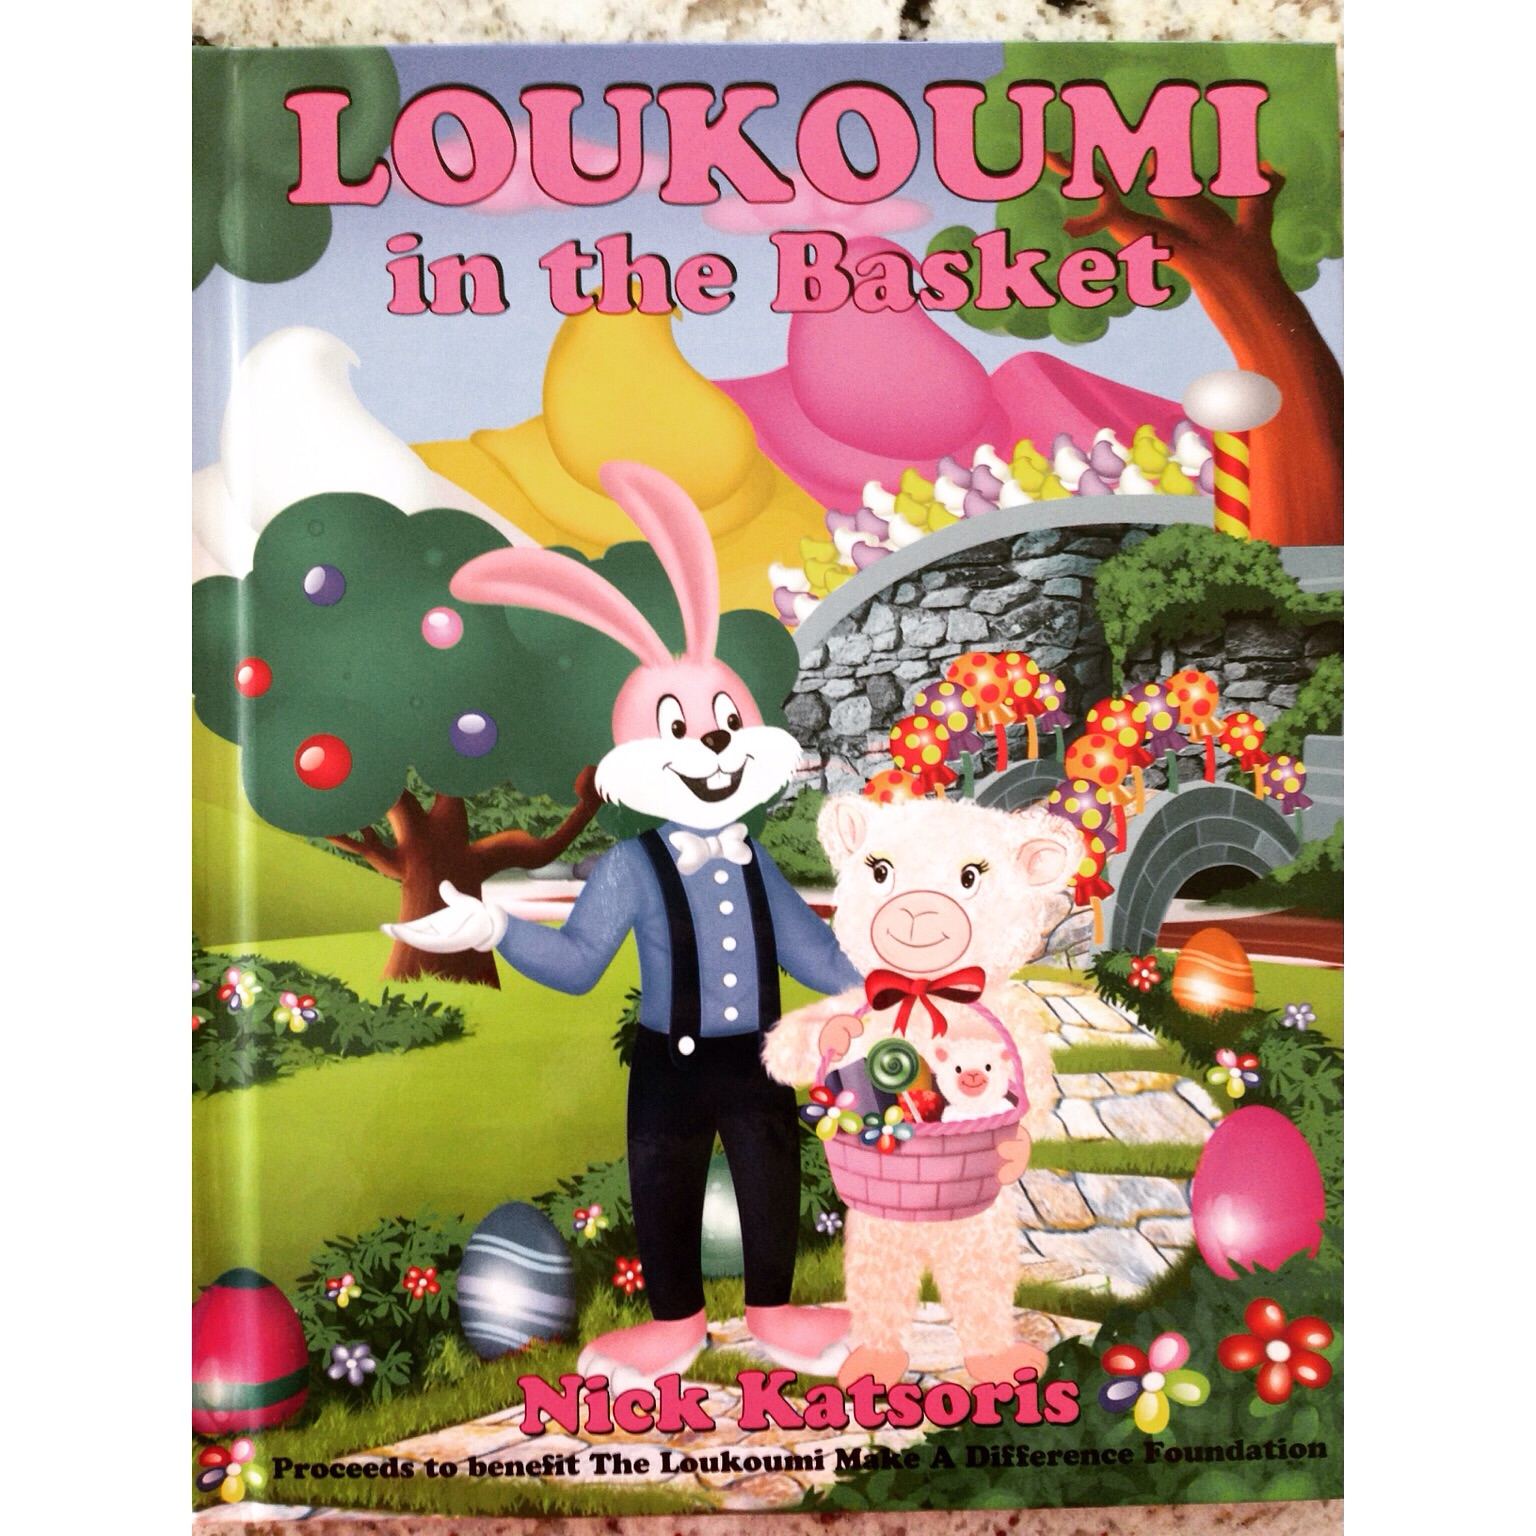 Our bed time book for Easter! We LOVE the LOUKOUMI series books!